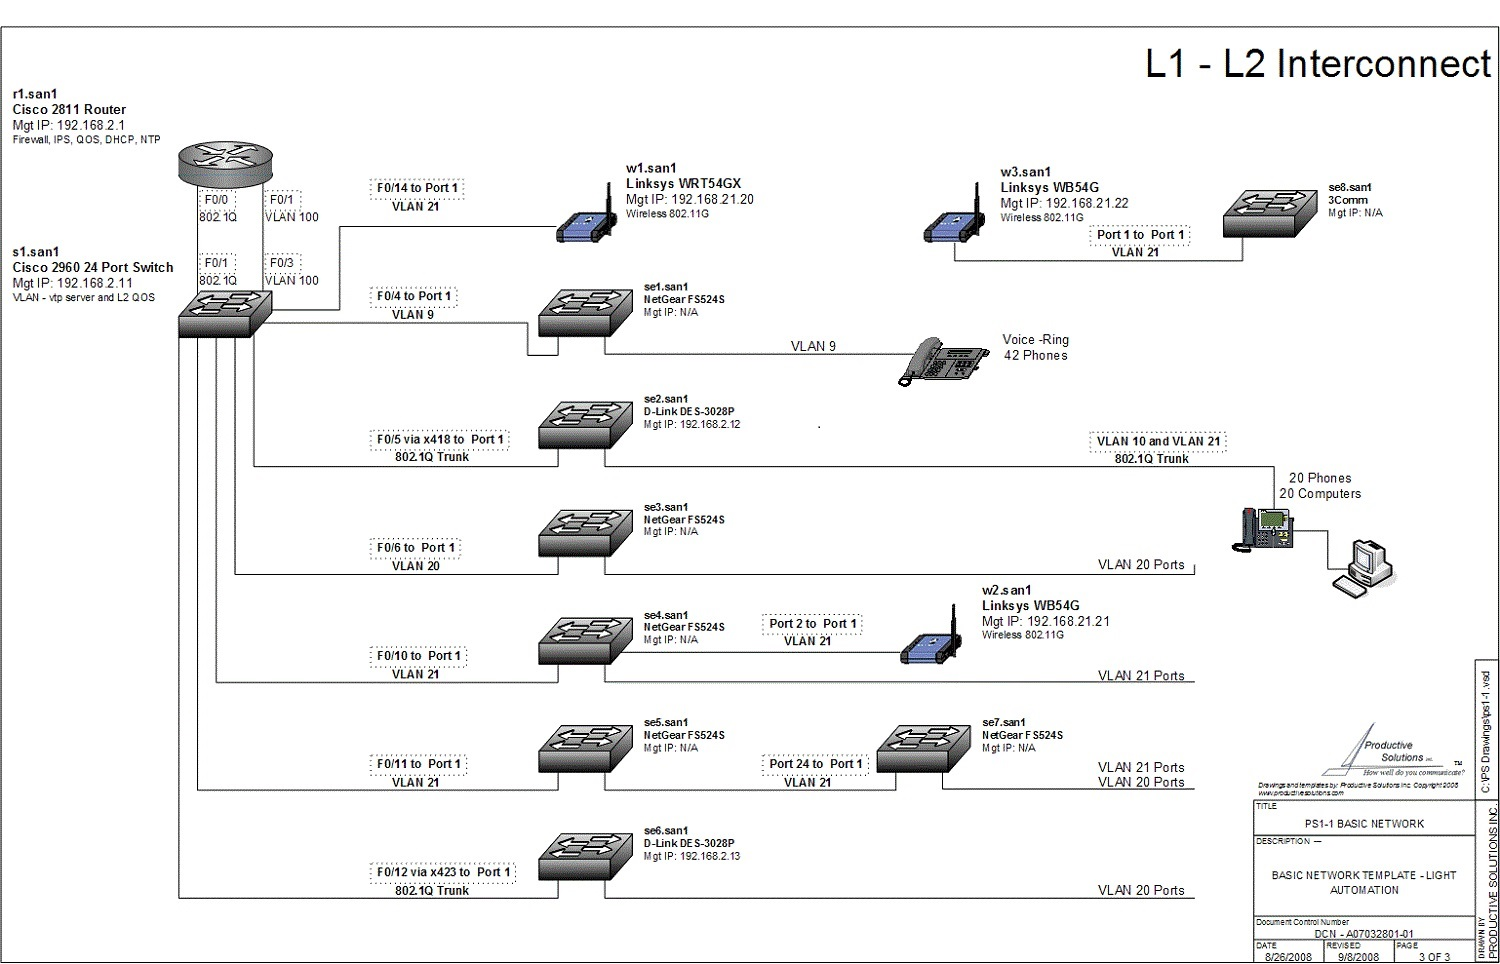 Visio Network Diagrams